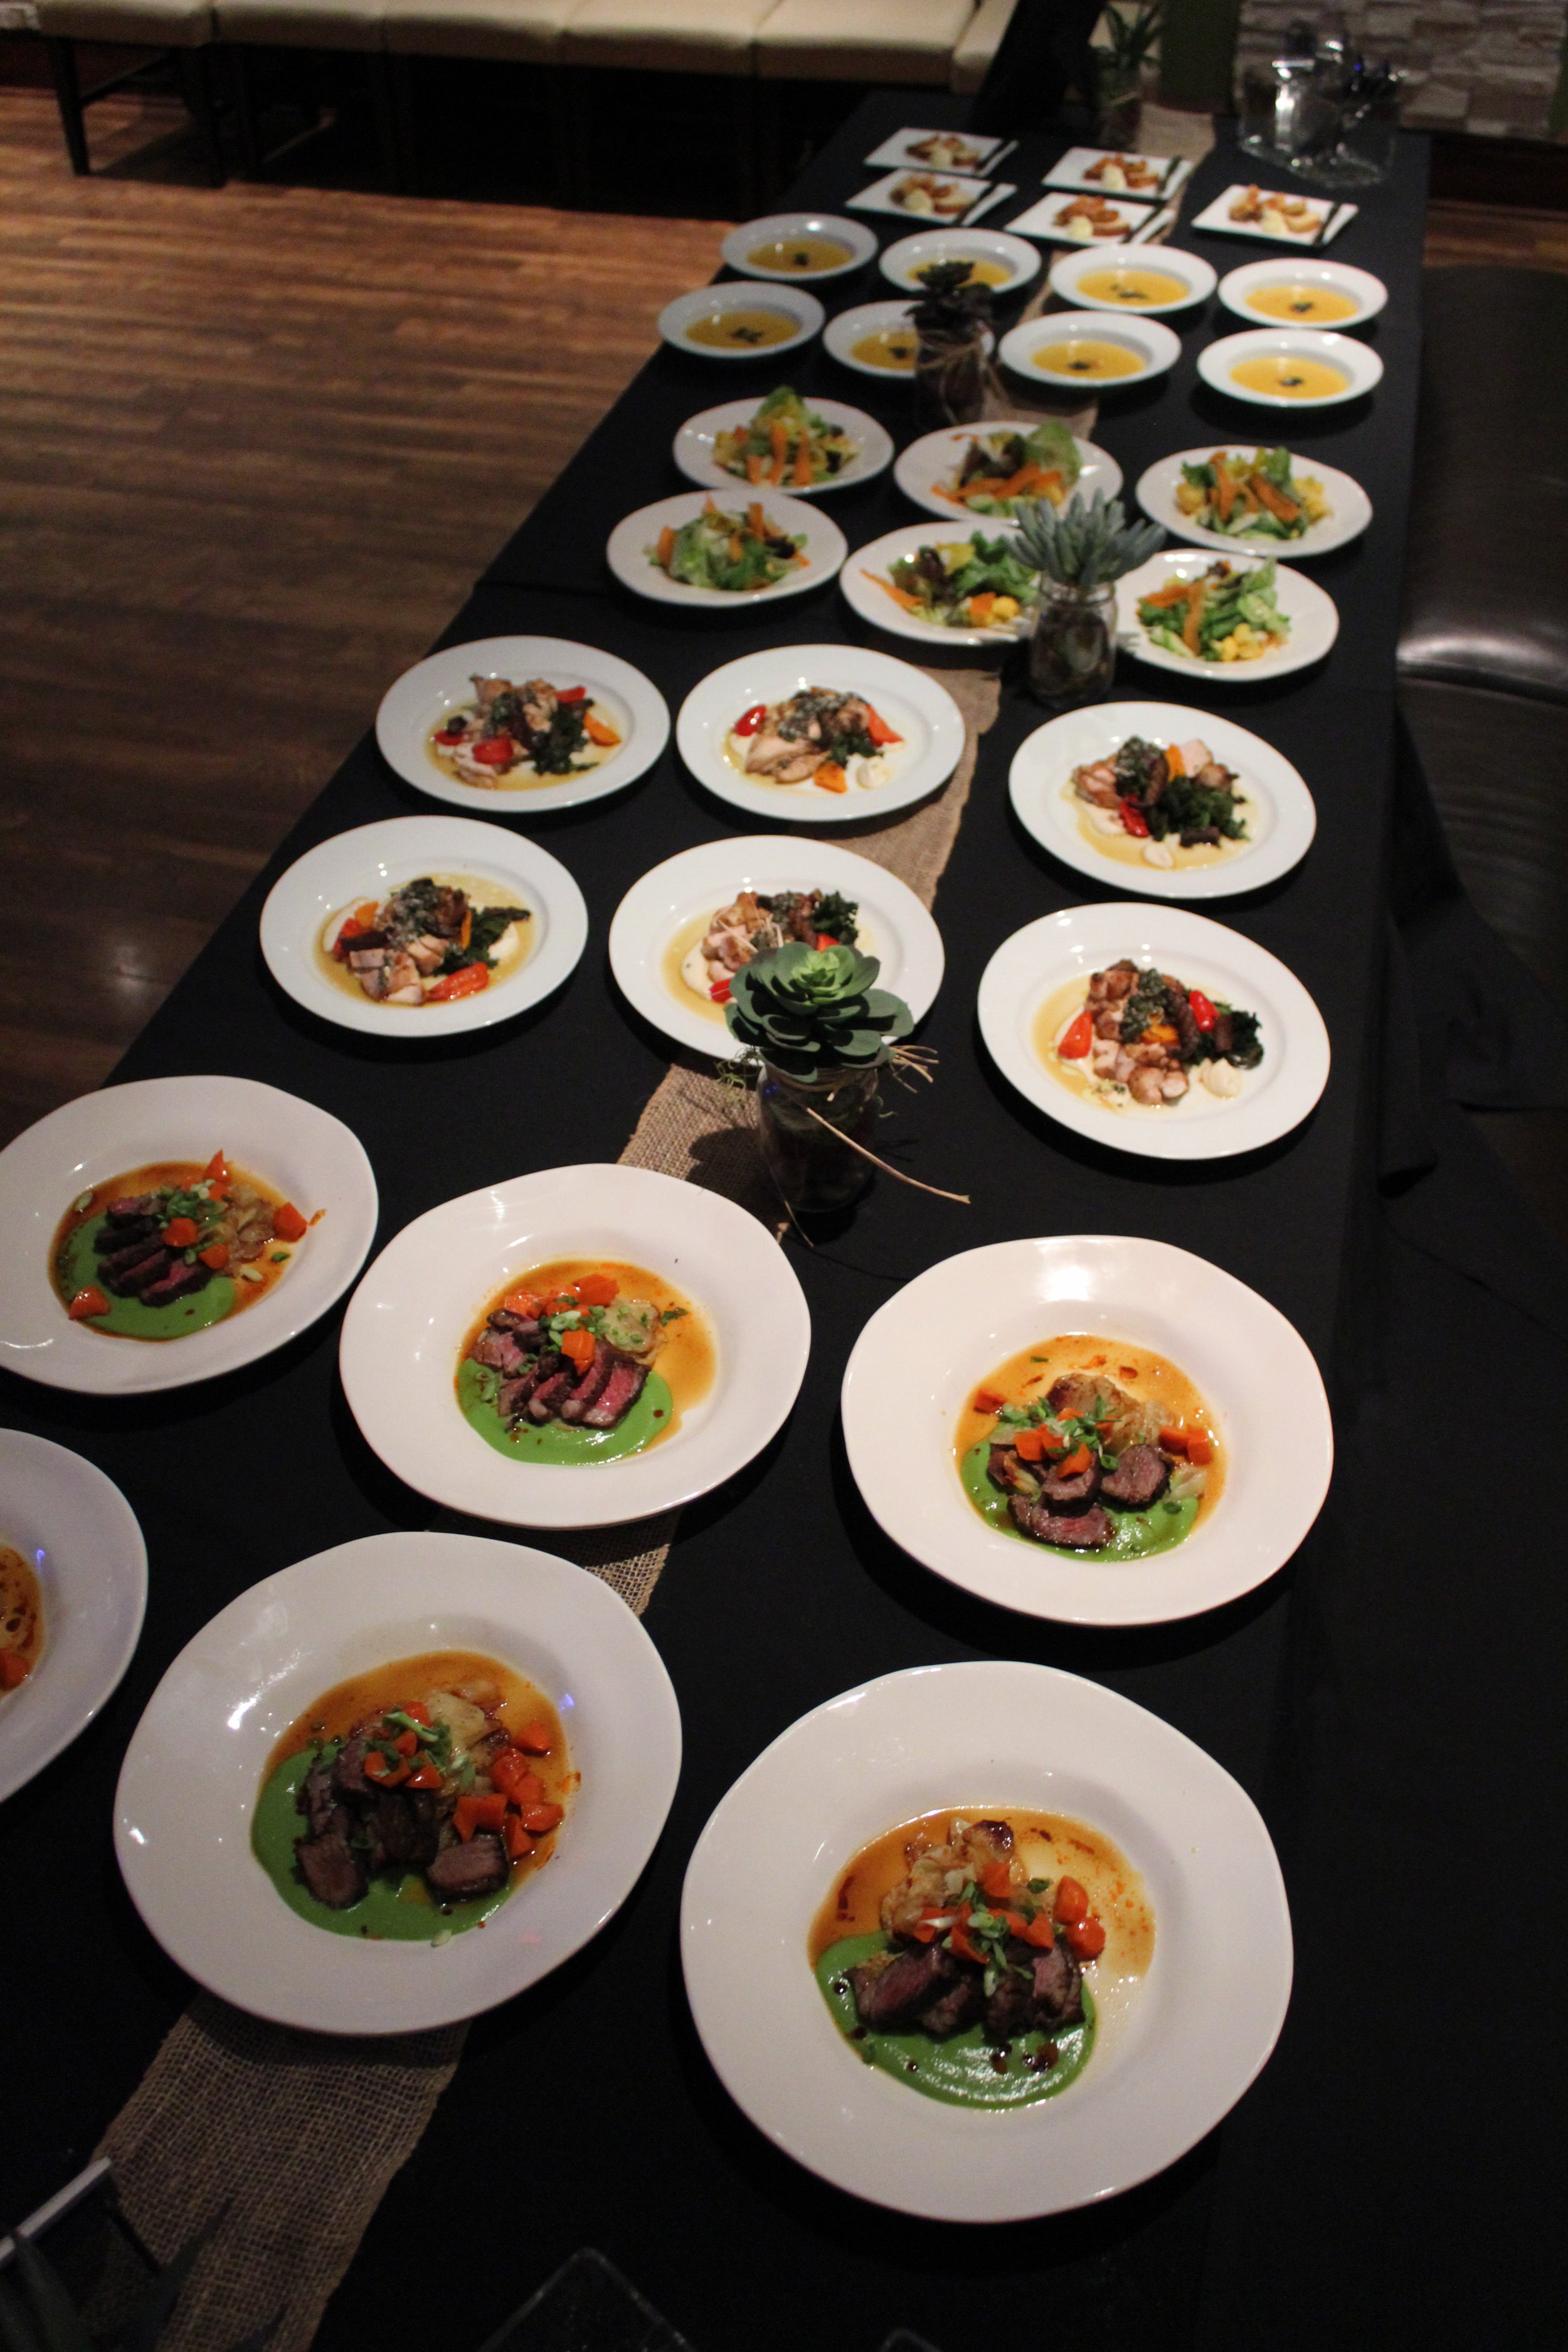 fresh-catering-delivery-scratch-keto-organic-office-catering-kansas-city-overland-park13.JPG